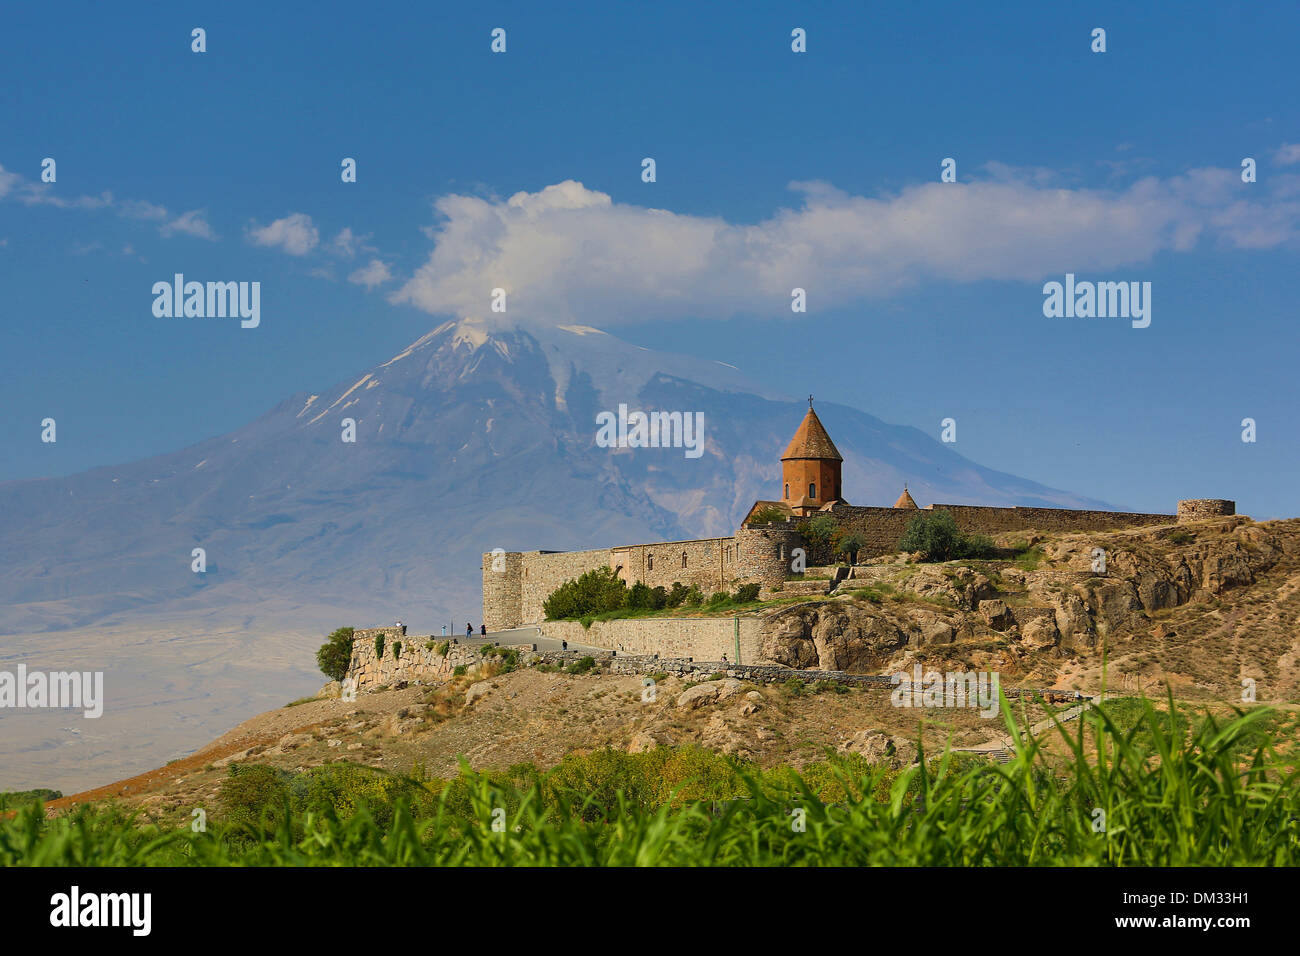 Armenia South Caucasus Caucasus Eurasia Khor Virap Lusarat Noe Ararat mountain architecture church history historical image - Stock Image